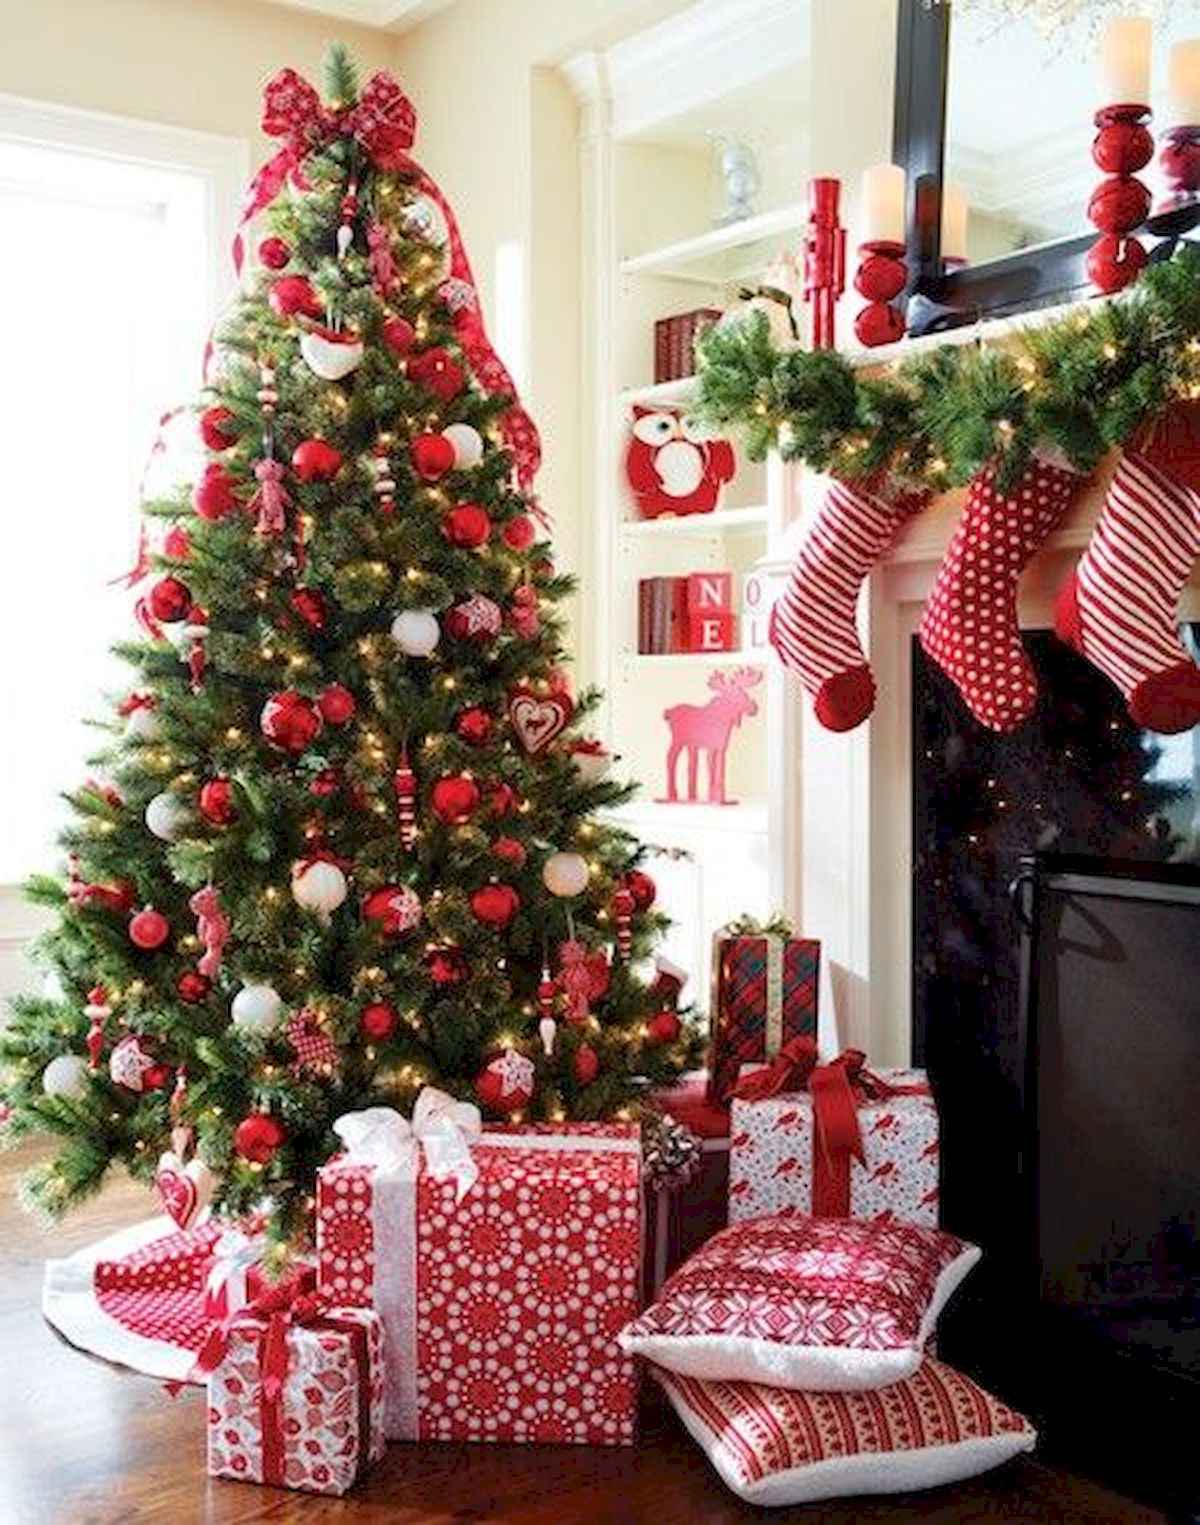 60 awesome christmas tree decorations ideas (5)